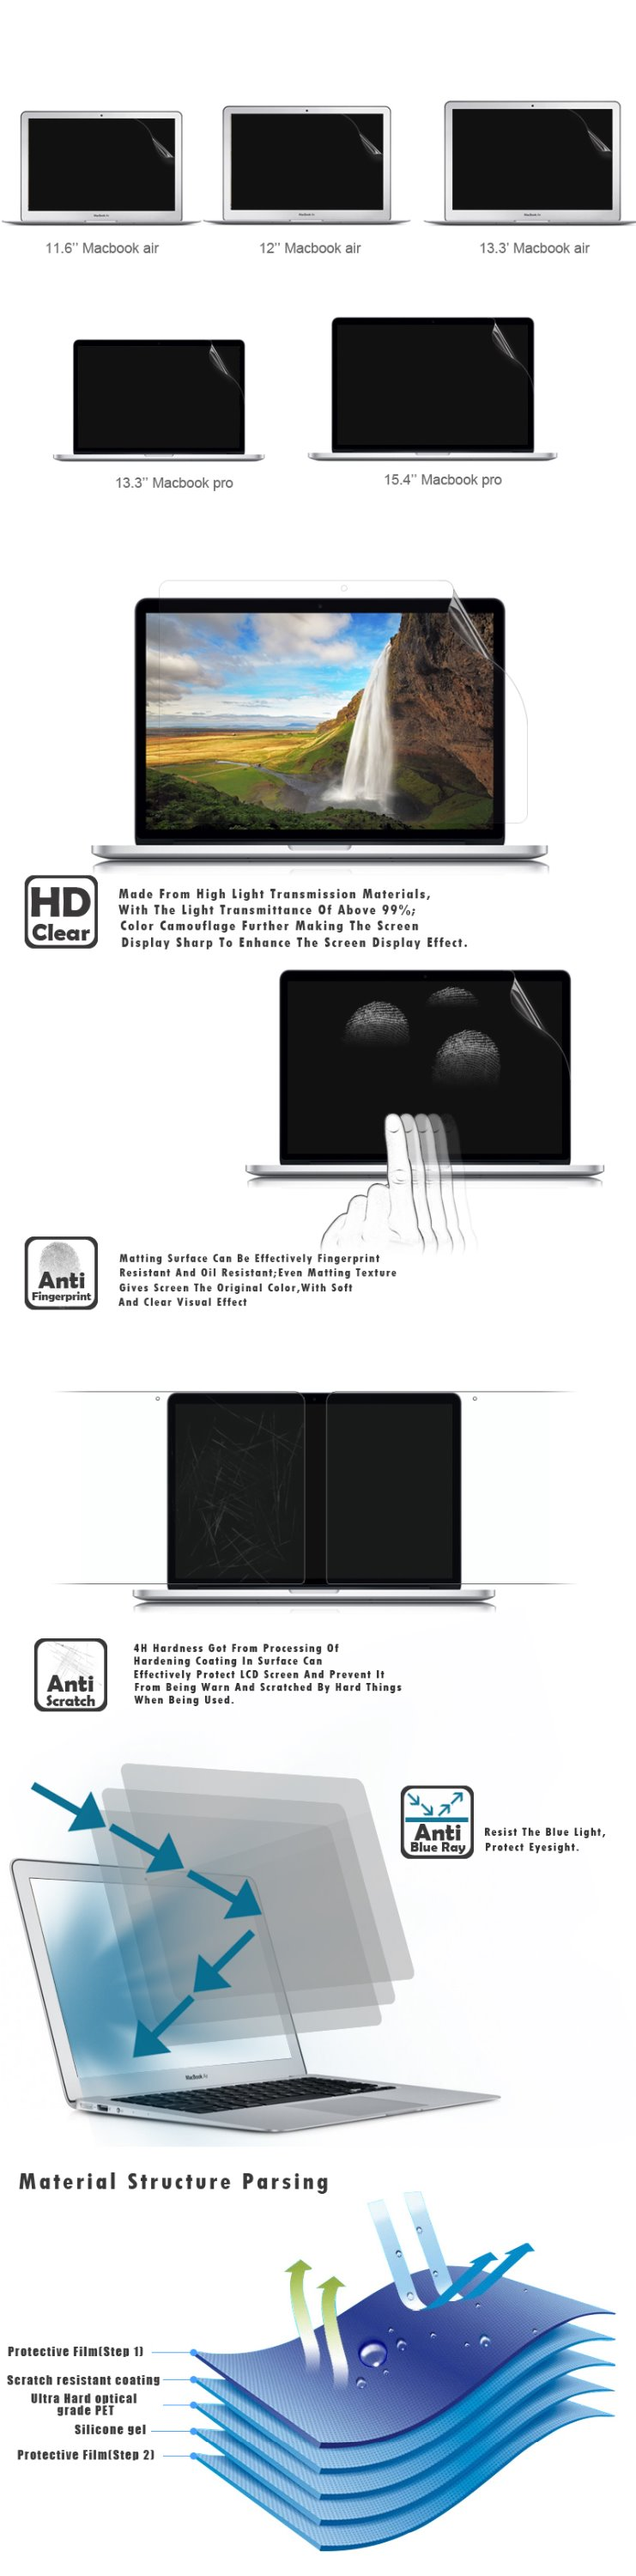 how to clean your macbook pro retina screen